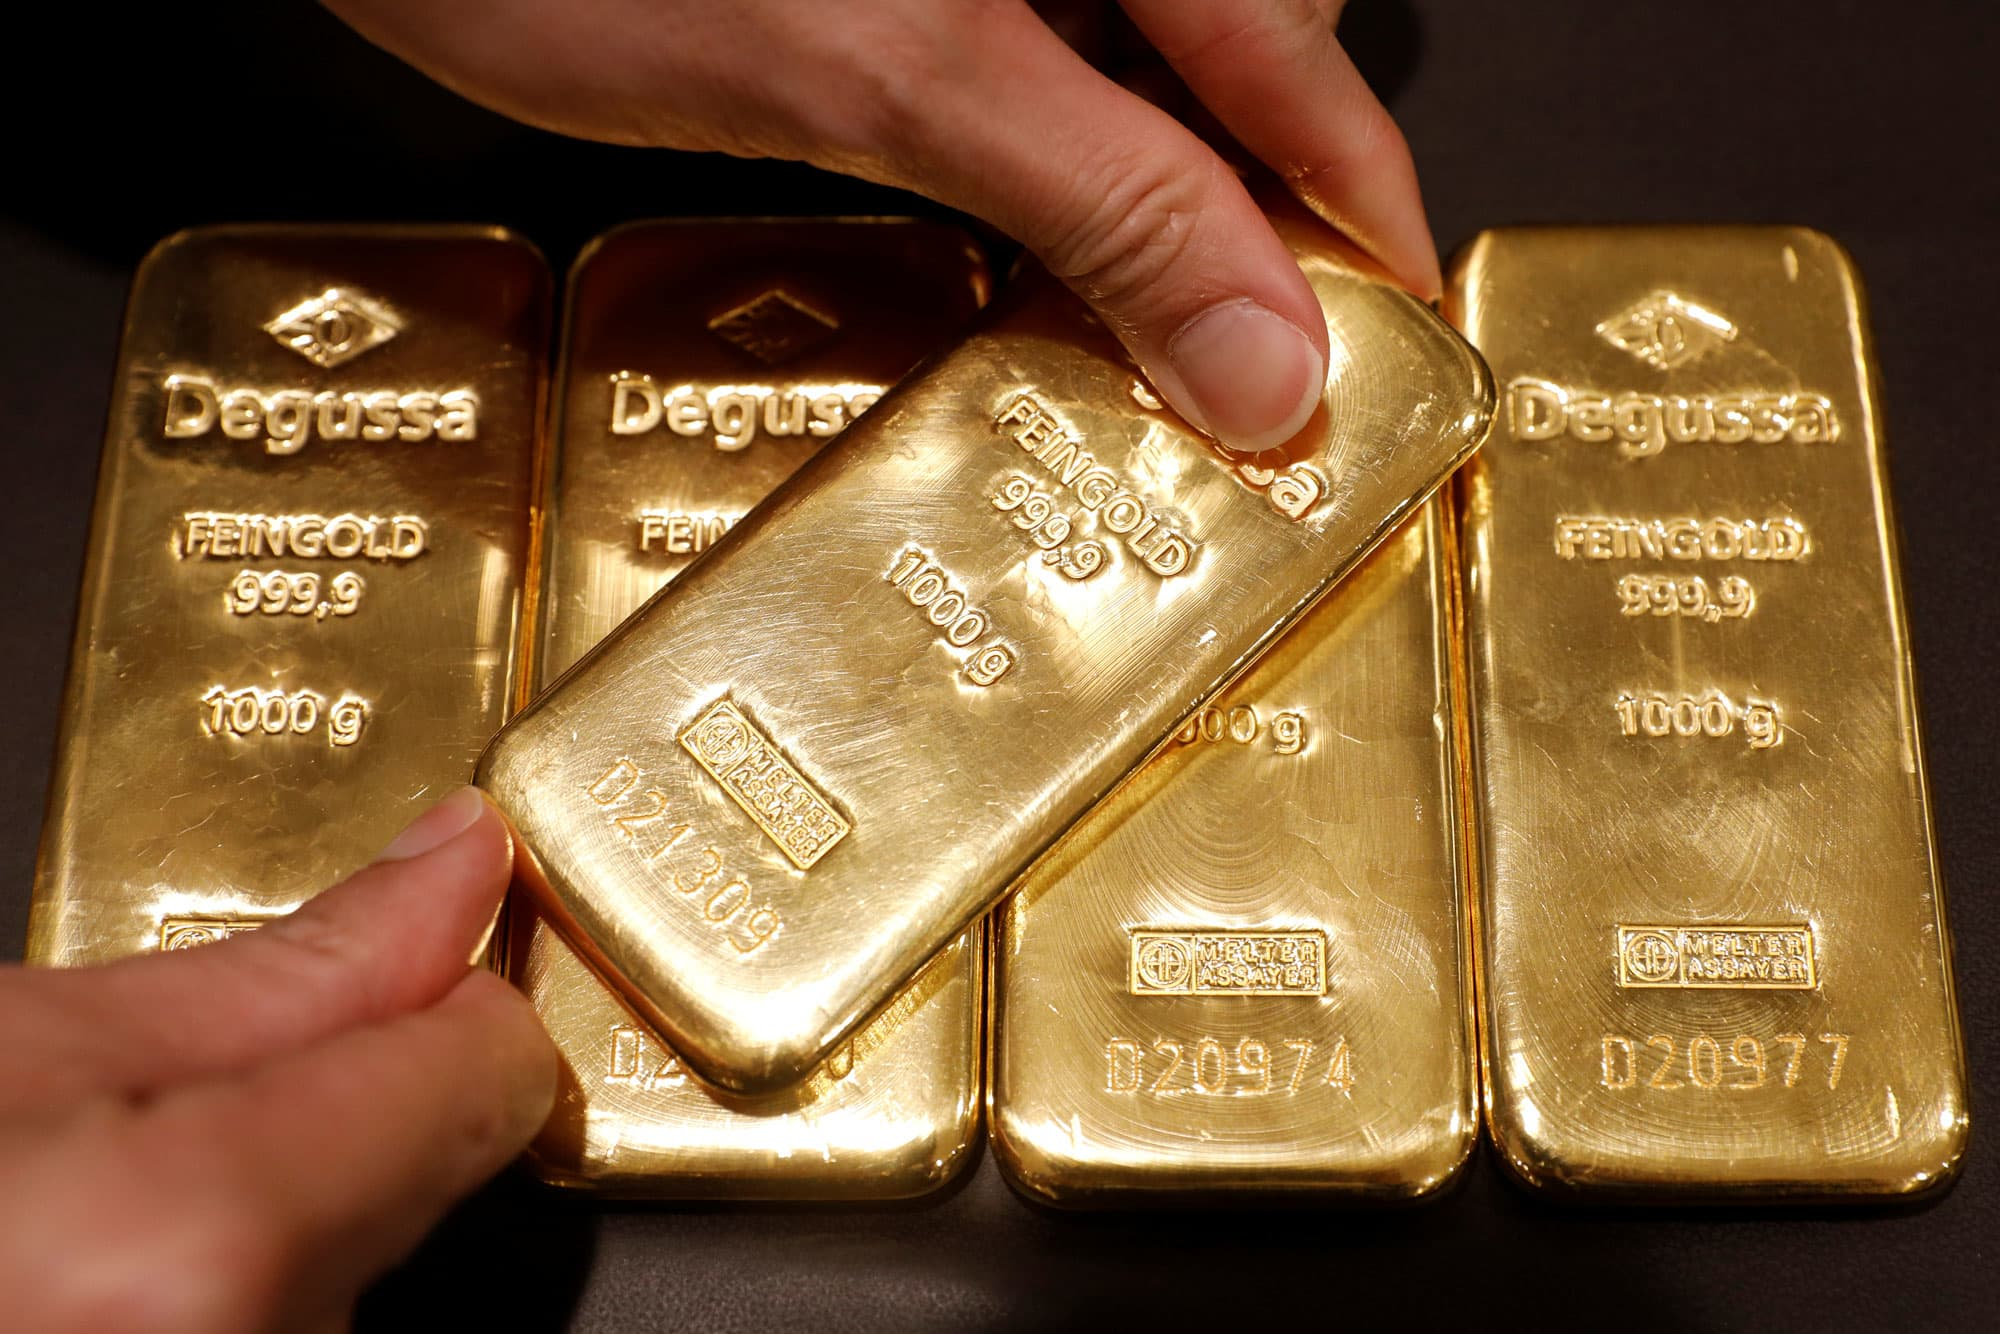 Watch out for this 'anomaly' when buying precious metals like gold, investor warns